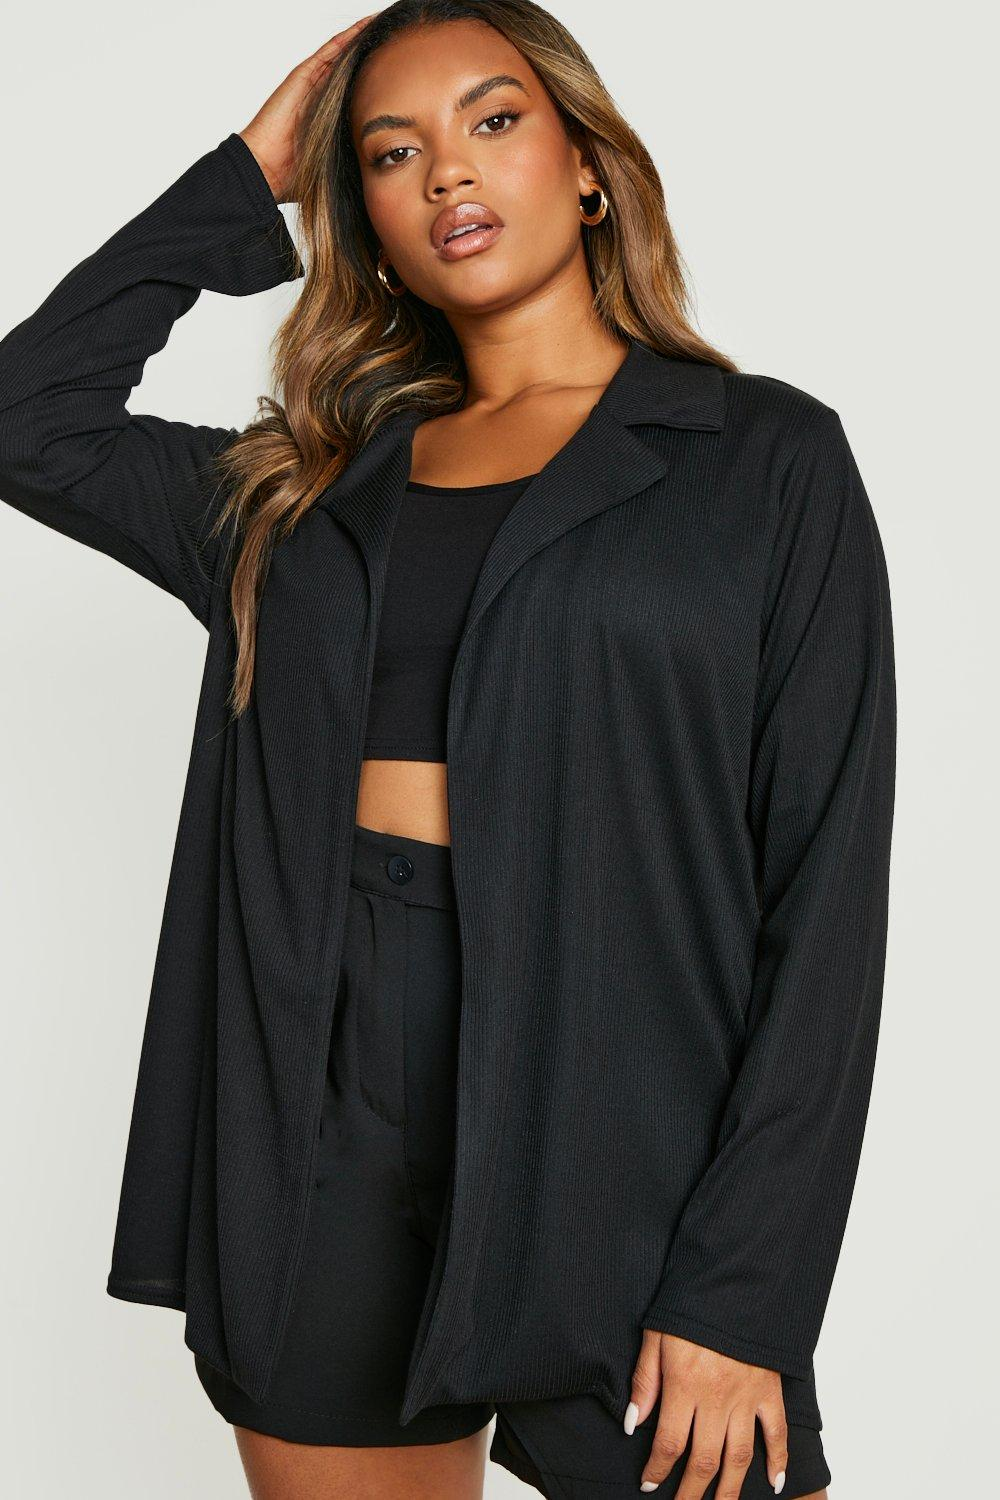 boohoo Womens Plus Textured Rib Blazer - Black - 16, Black